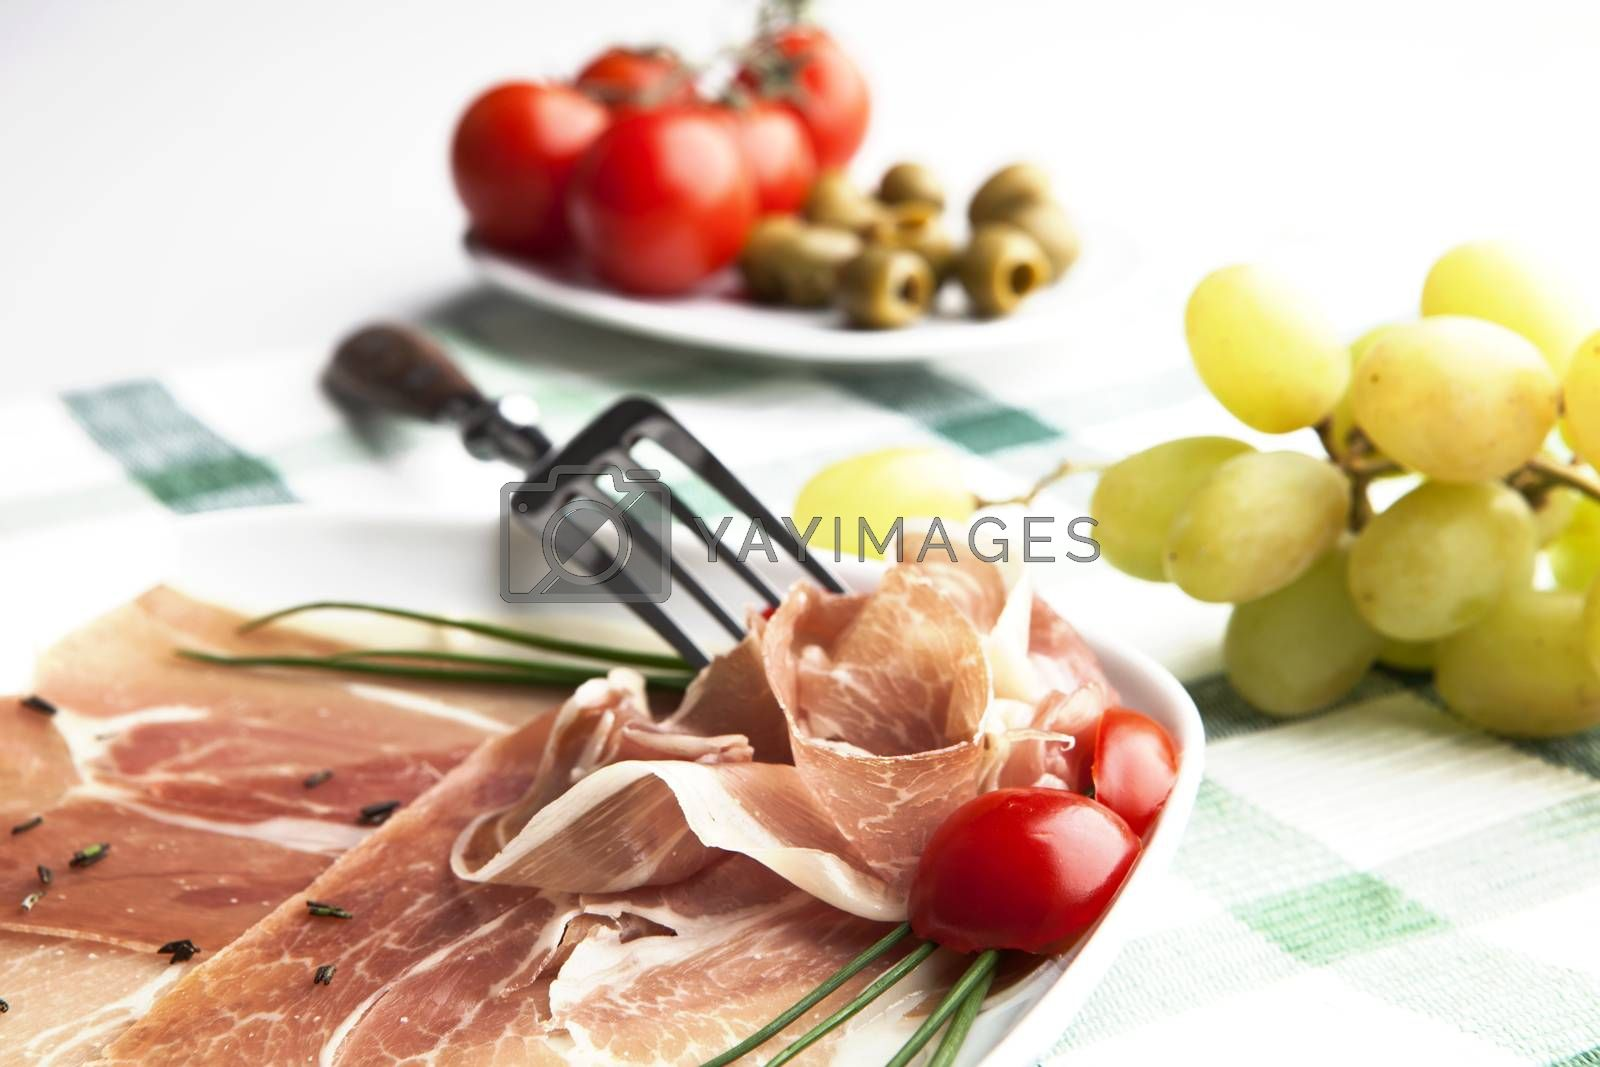 Delicious prosciutto plate with olives, tomatos and grapes.